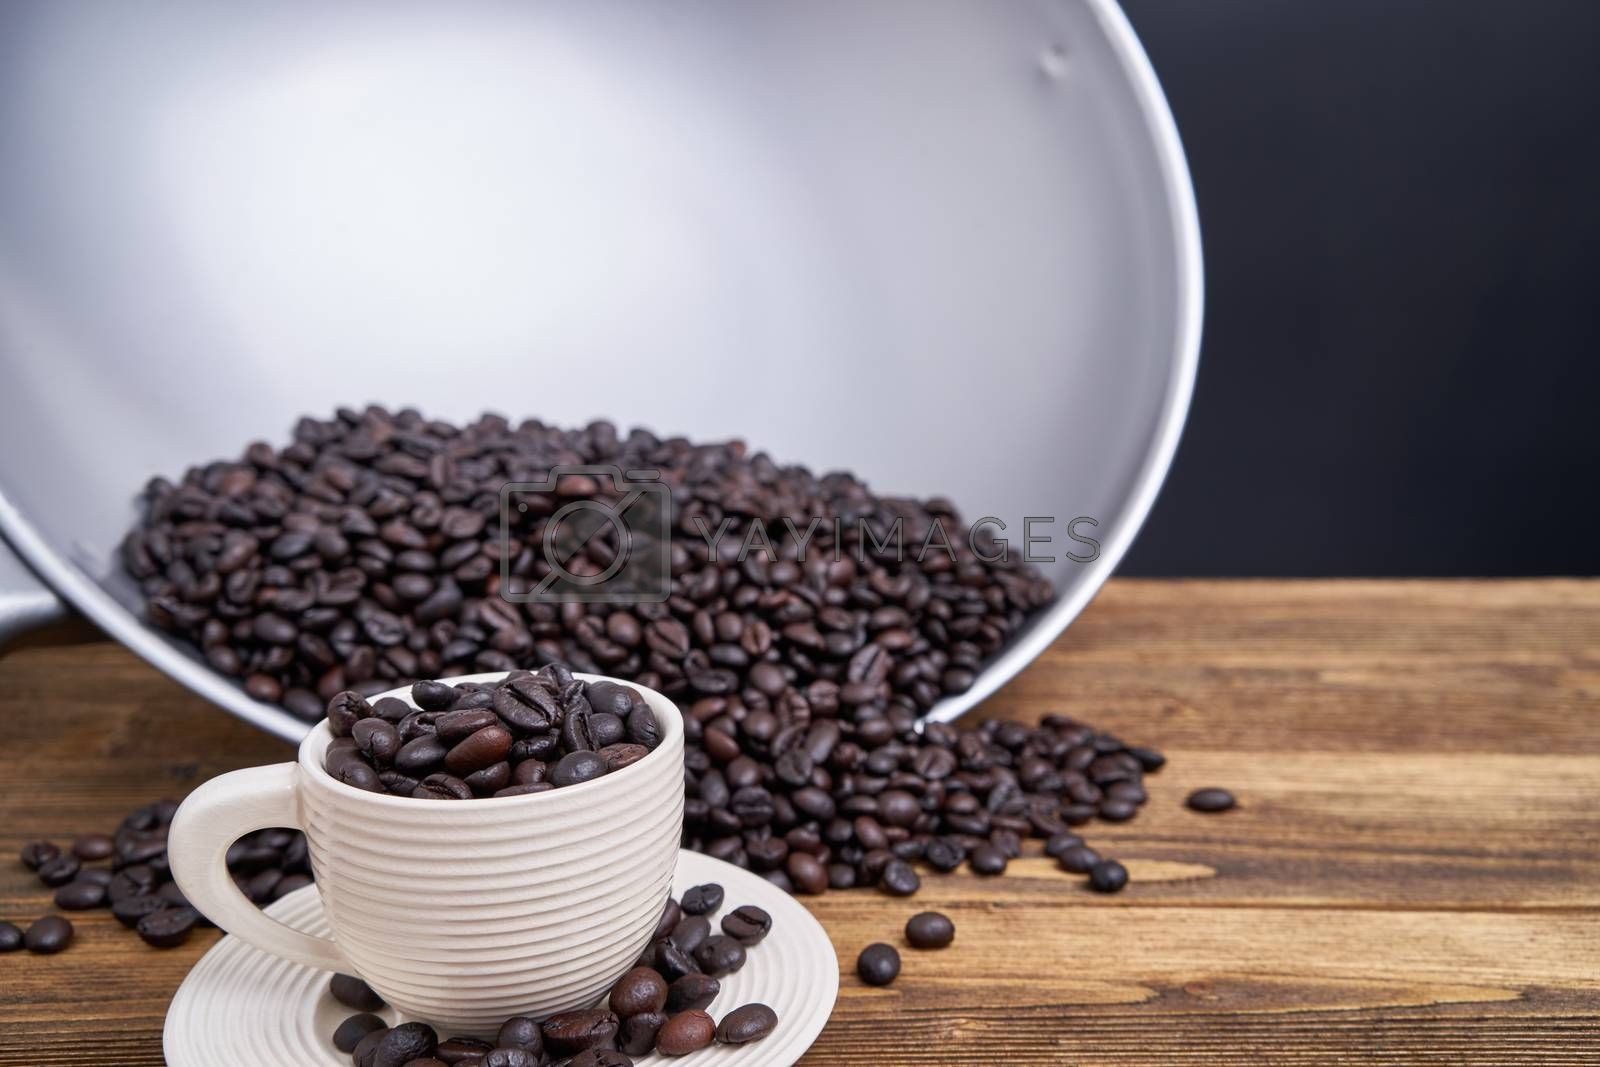 Royalty free image of Close up coffee bean in white cup with black background by eaglesky